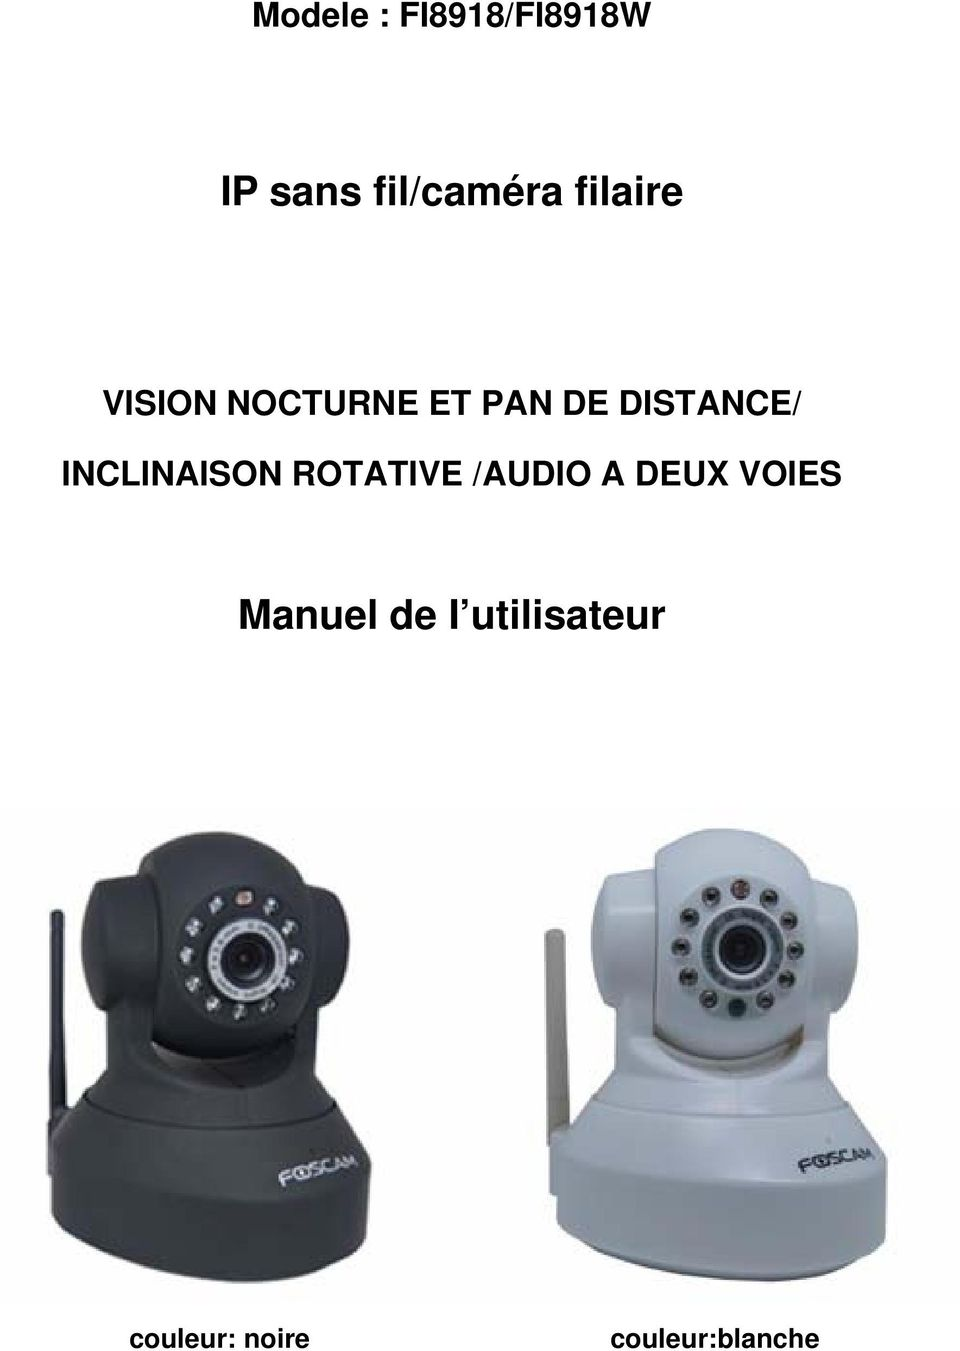 INCLINAISON ROTATIVE /AUDIO A DEUX VOIES